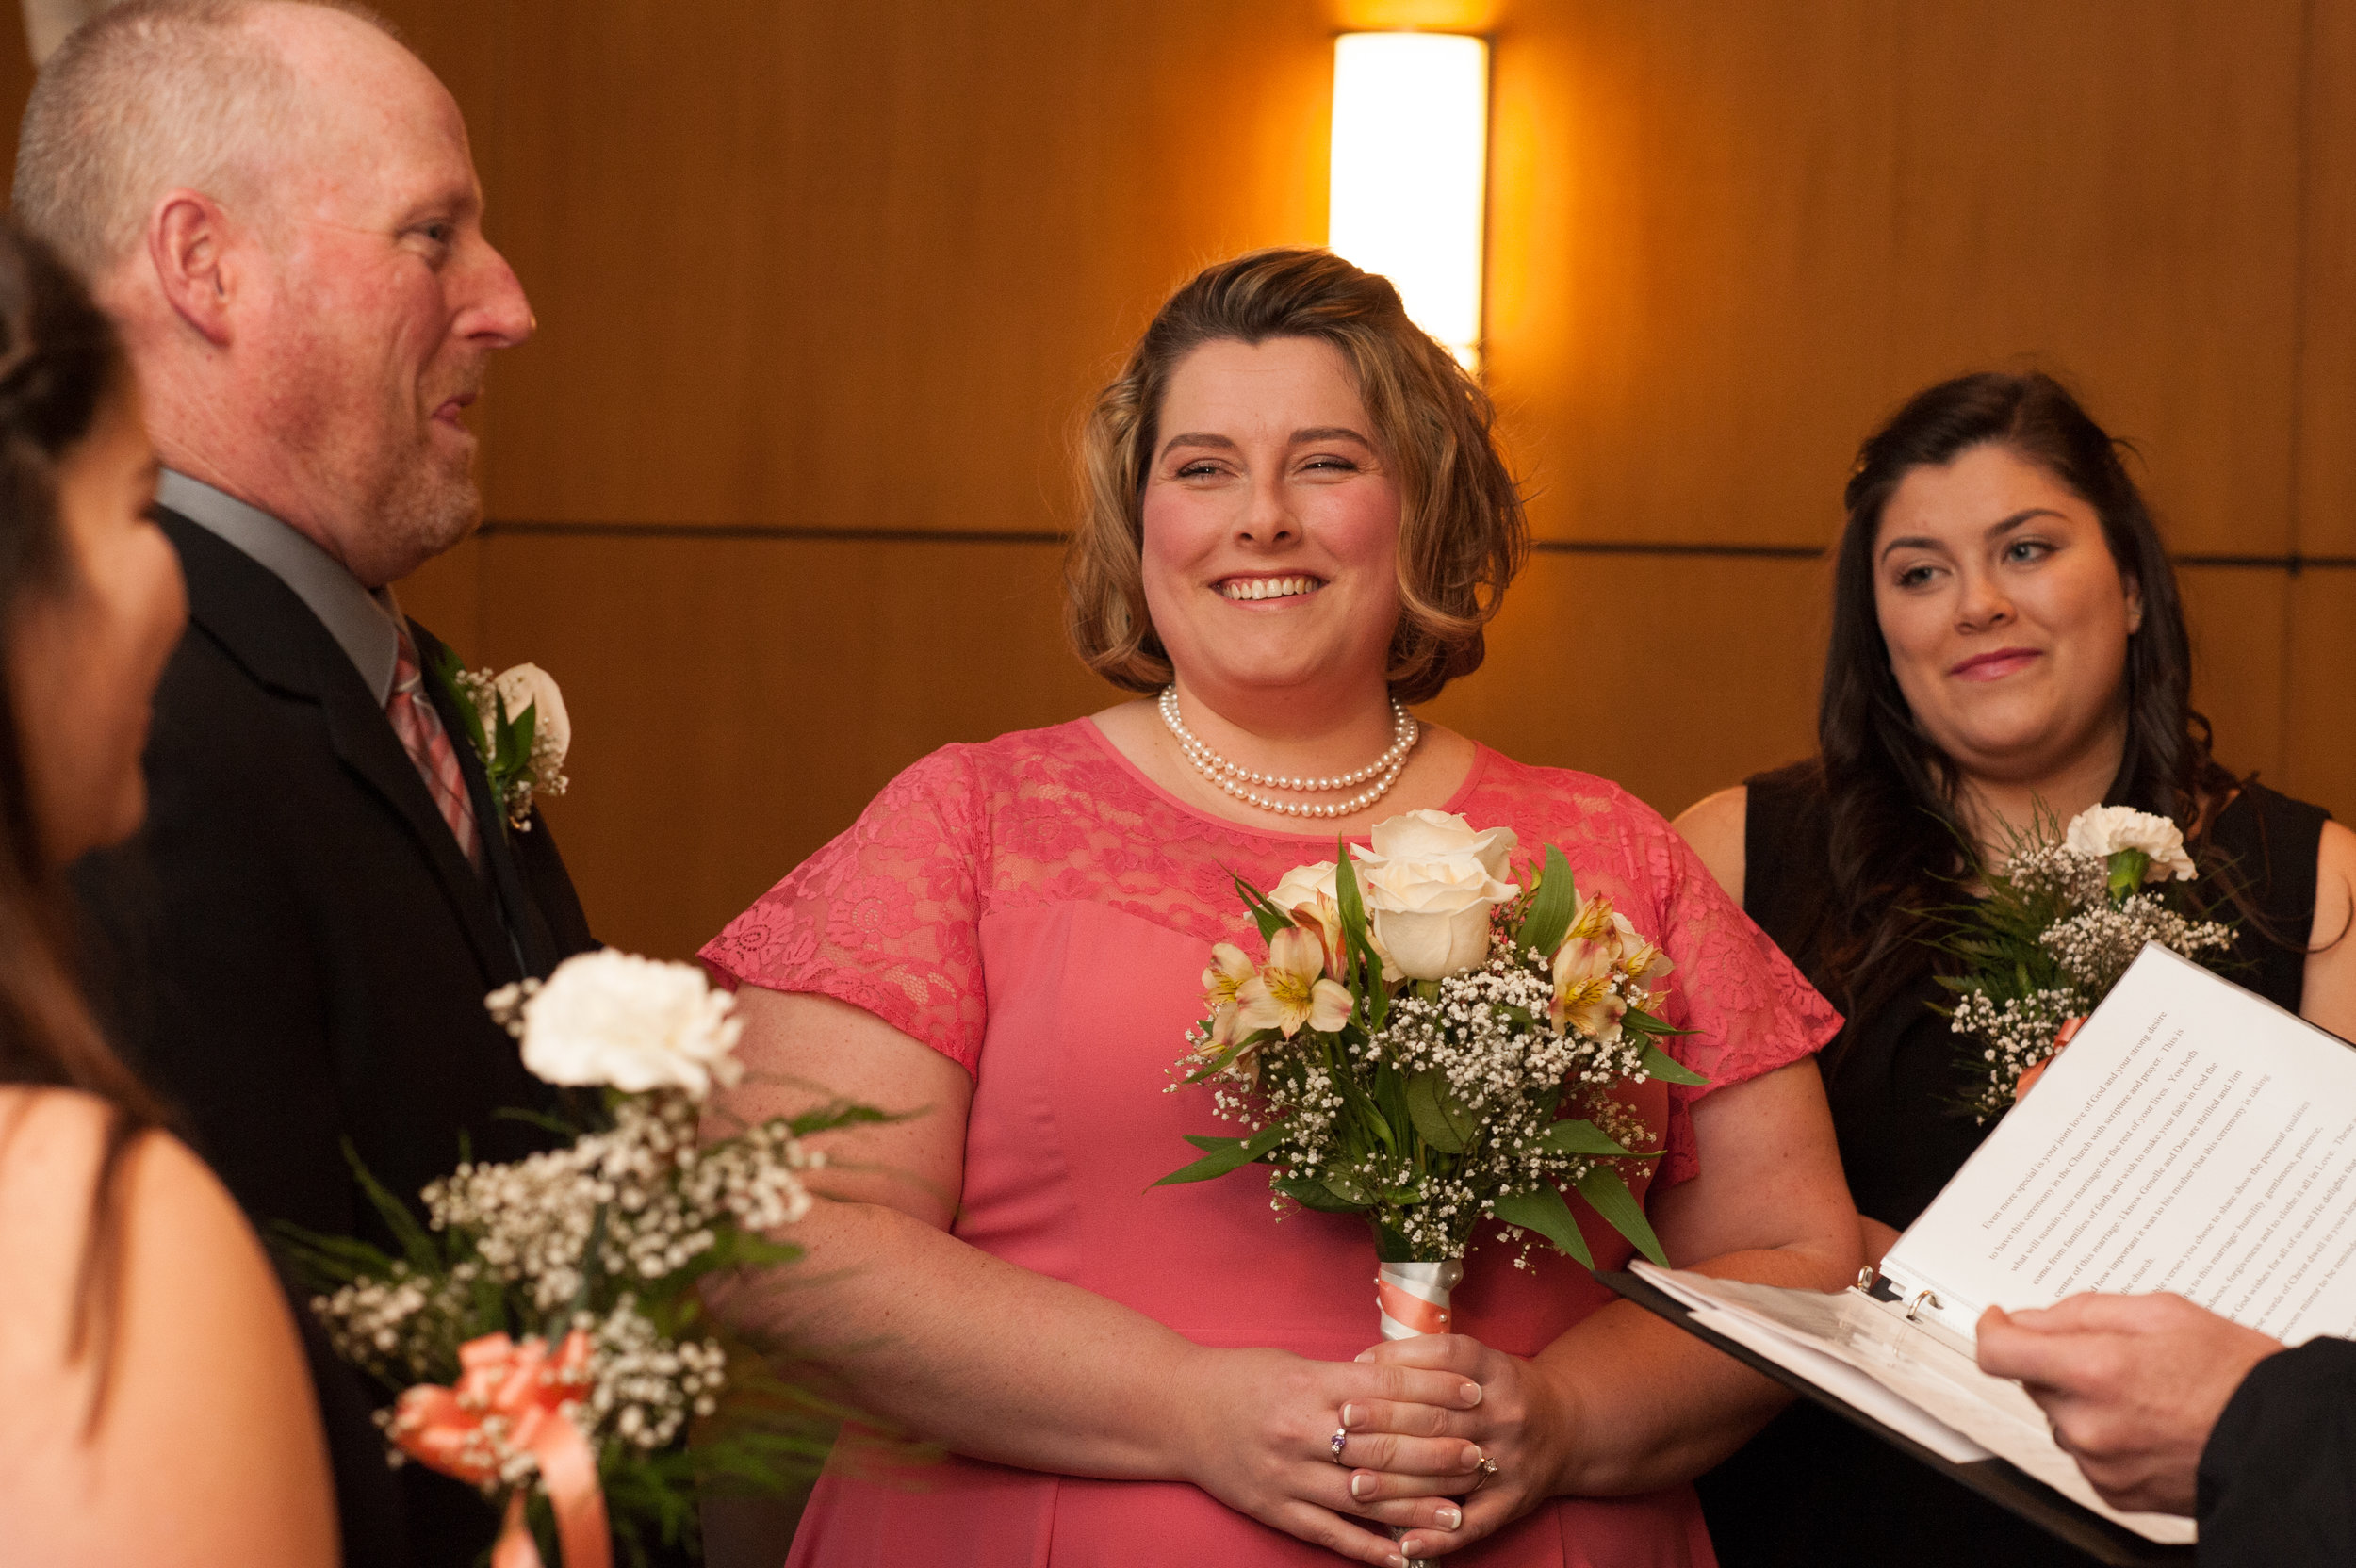 Minneapolis St. Paul wedding photographer M photography -0004.jpg